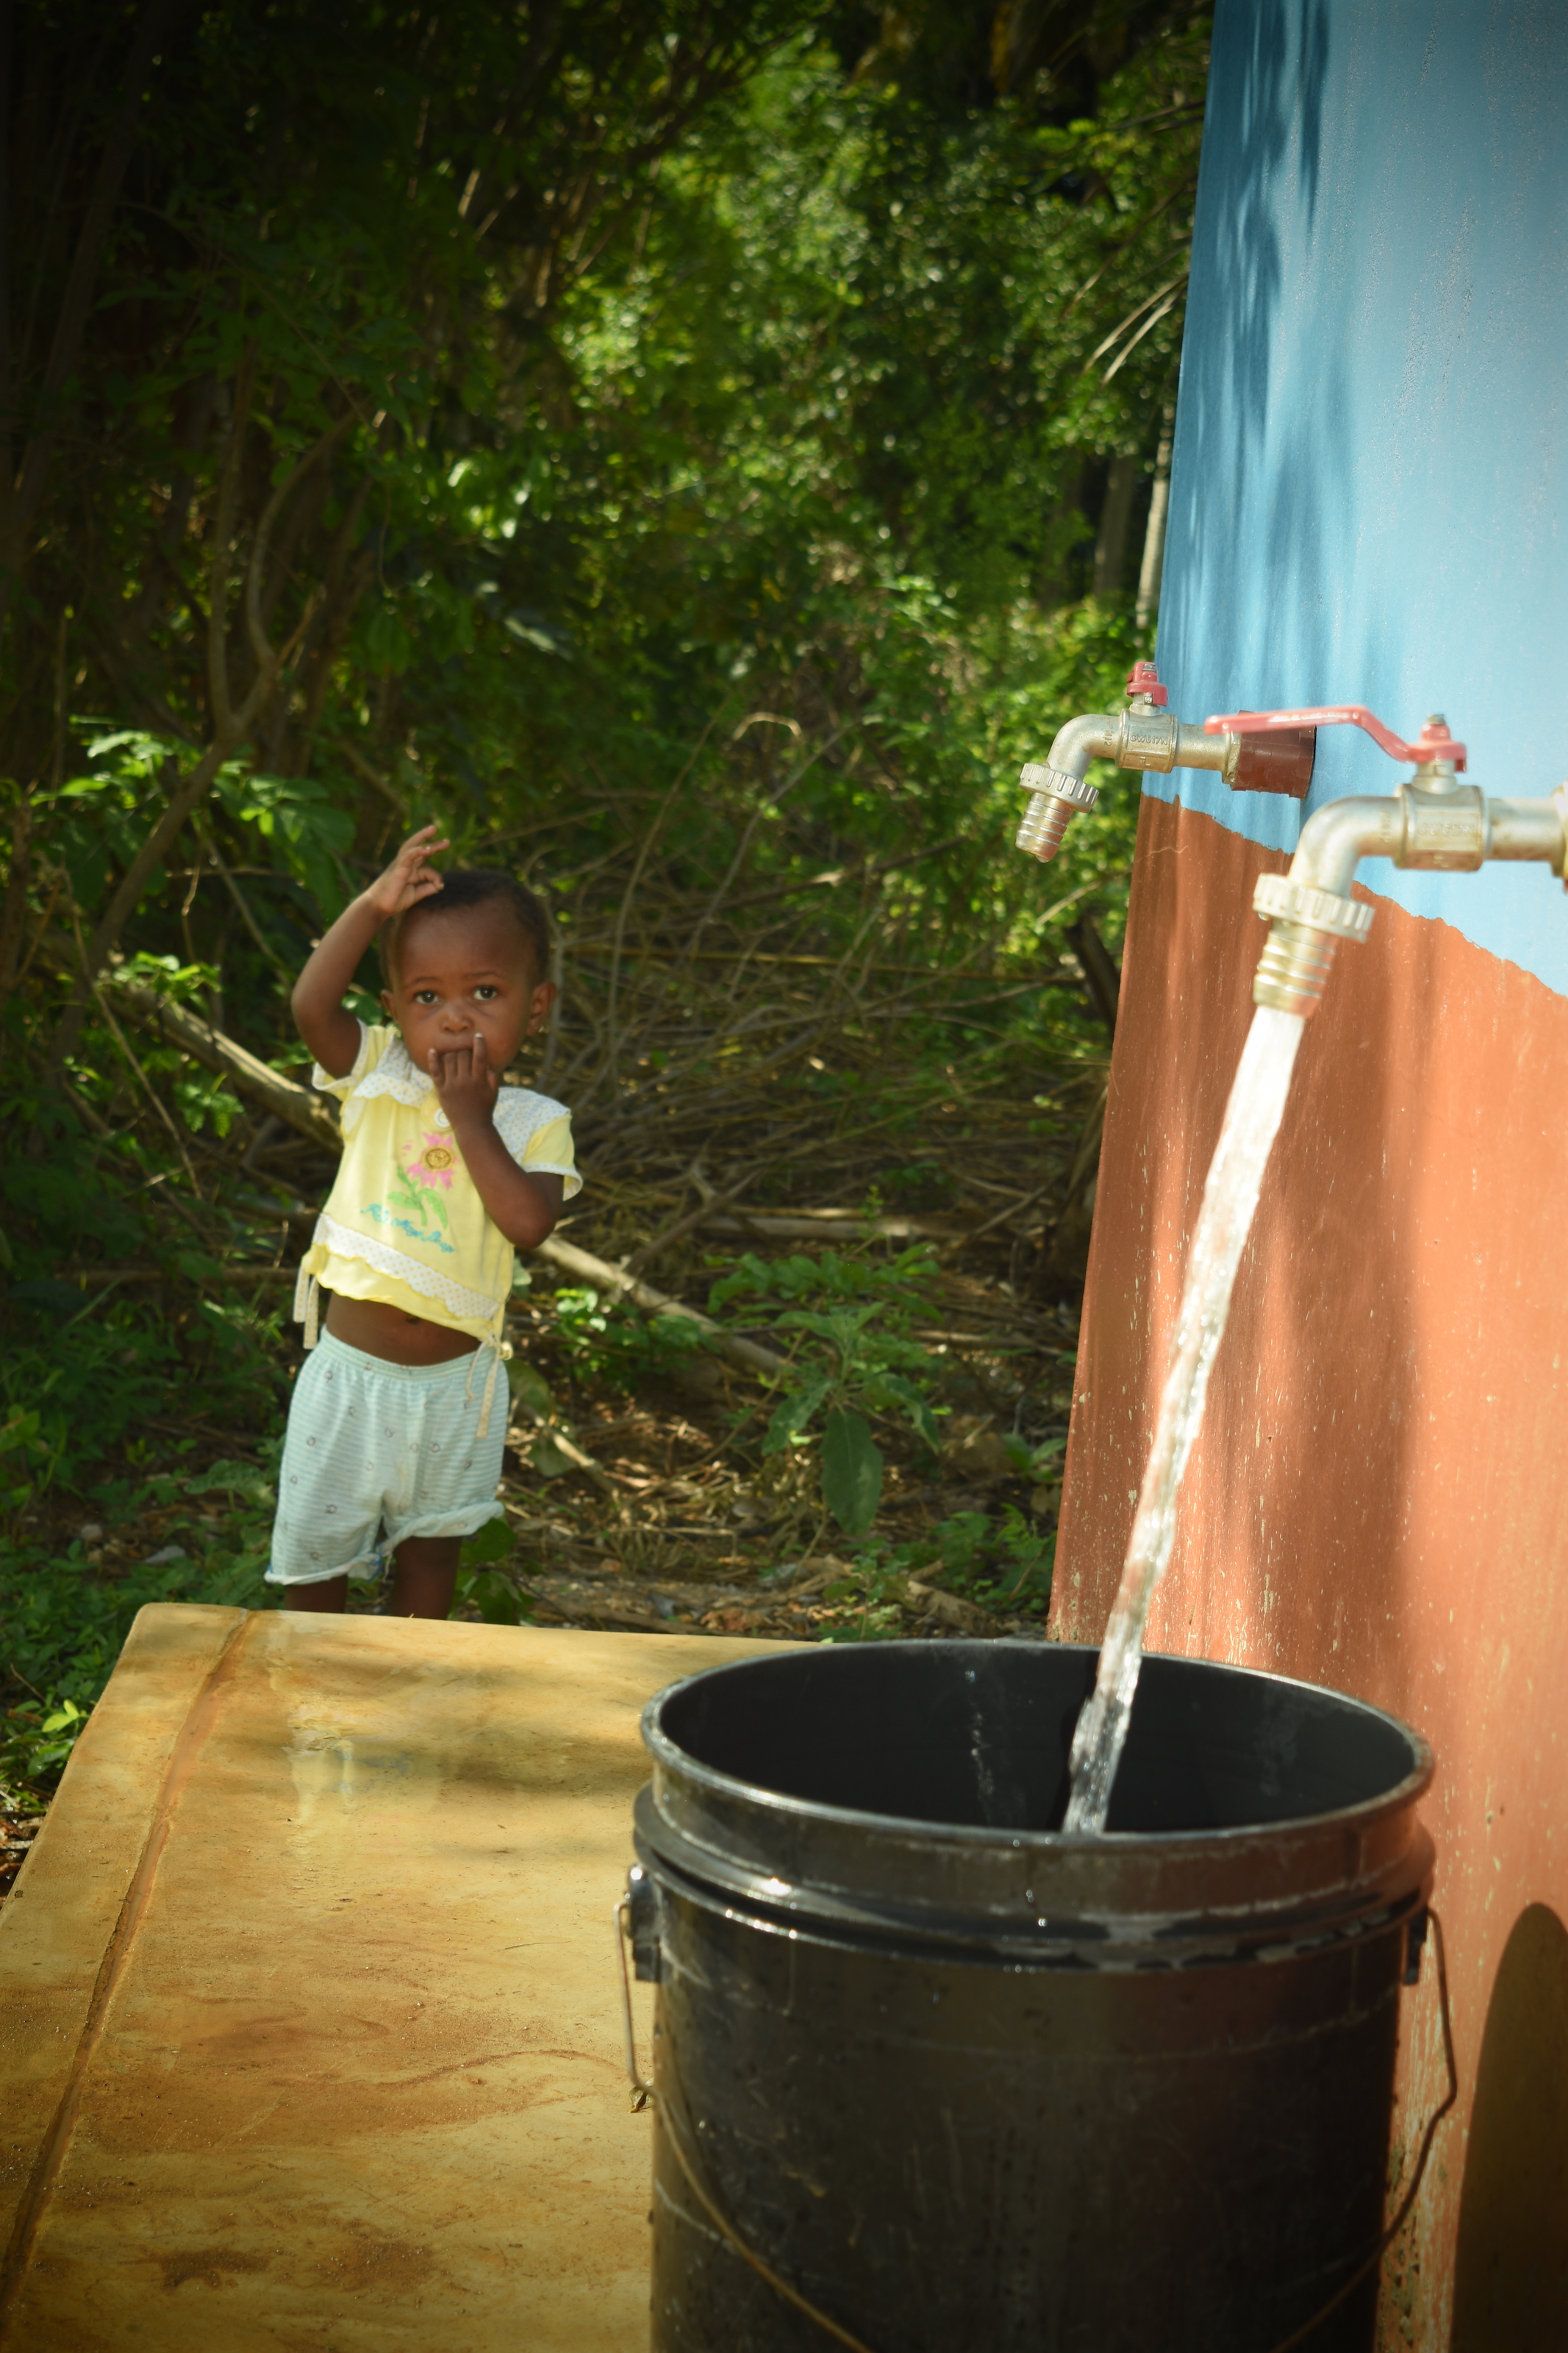 The children are healthier now because they have clean water